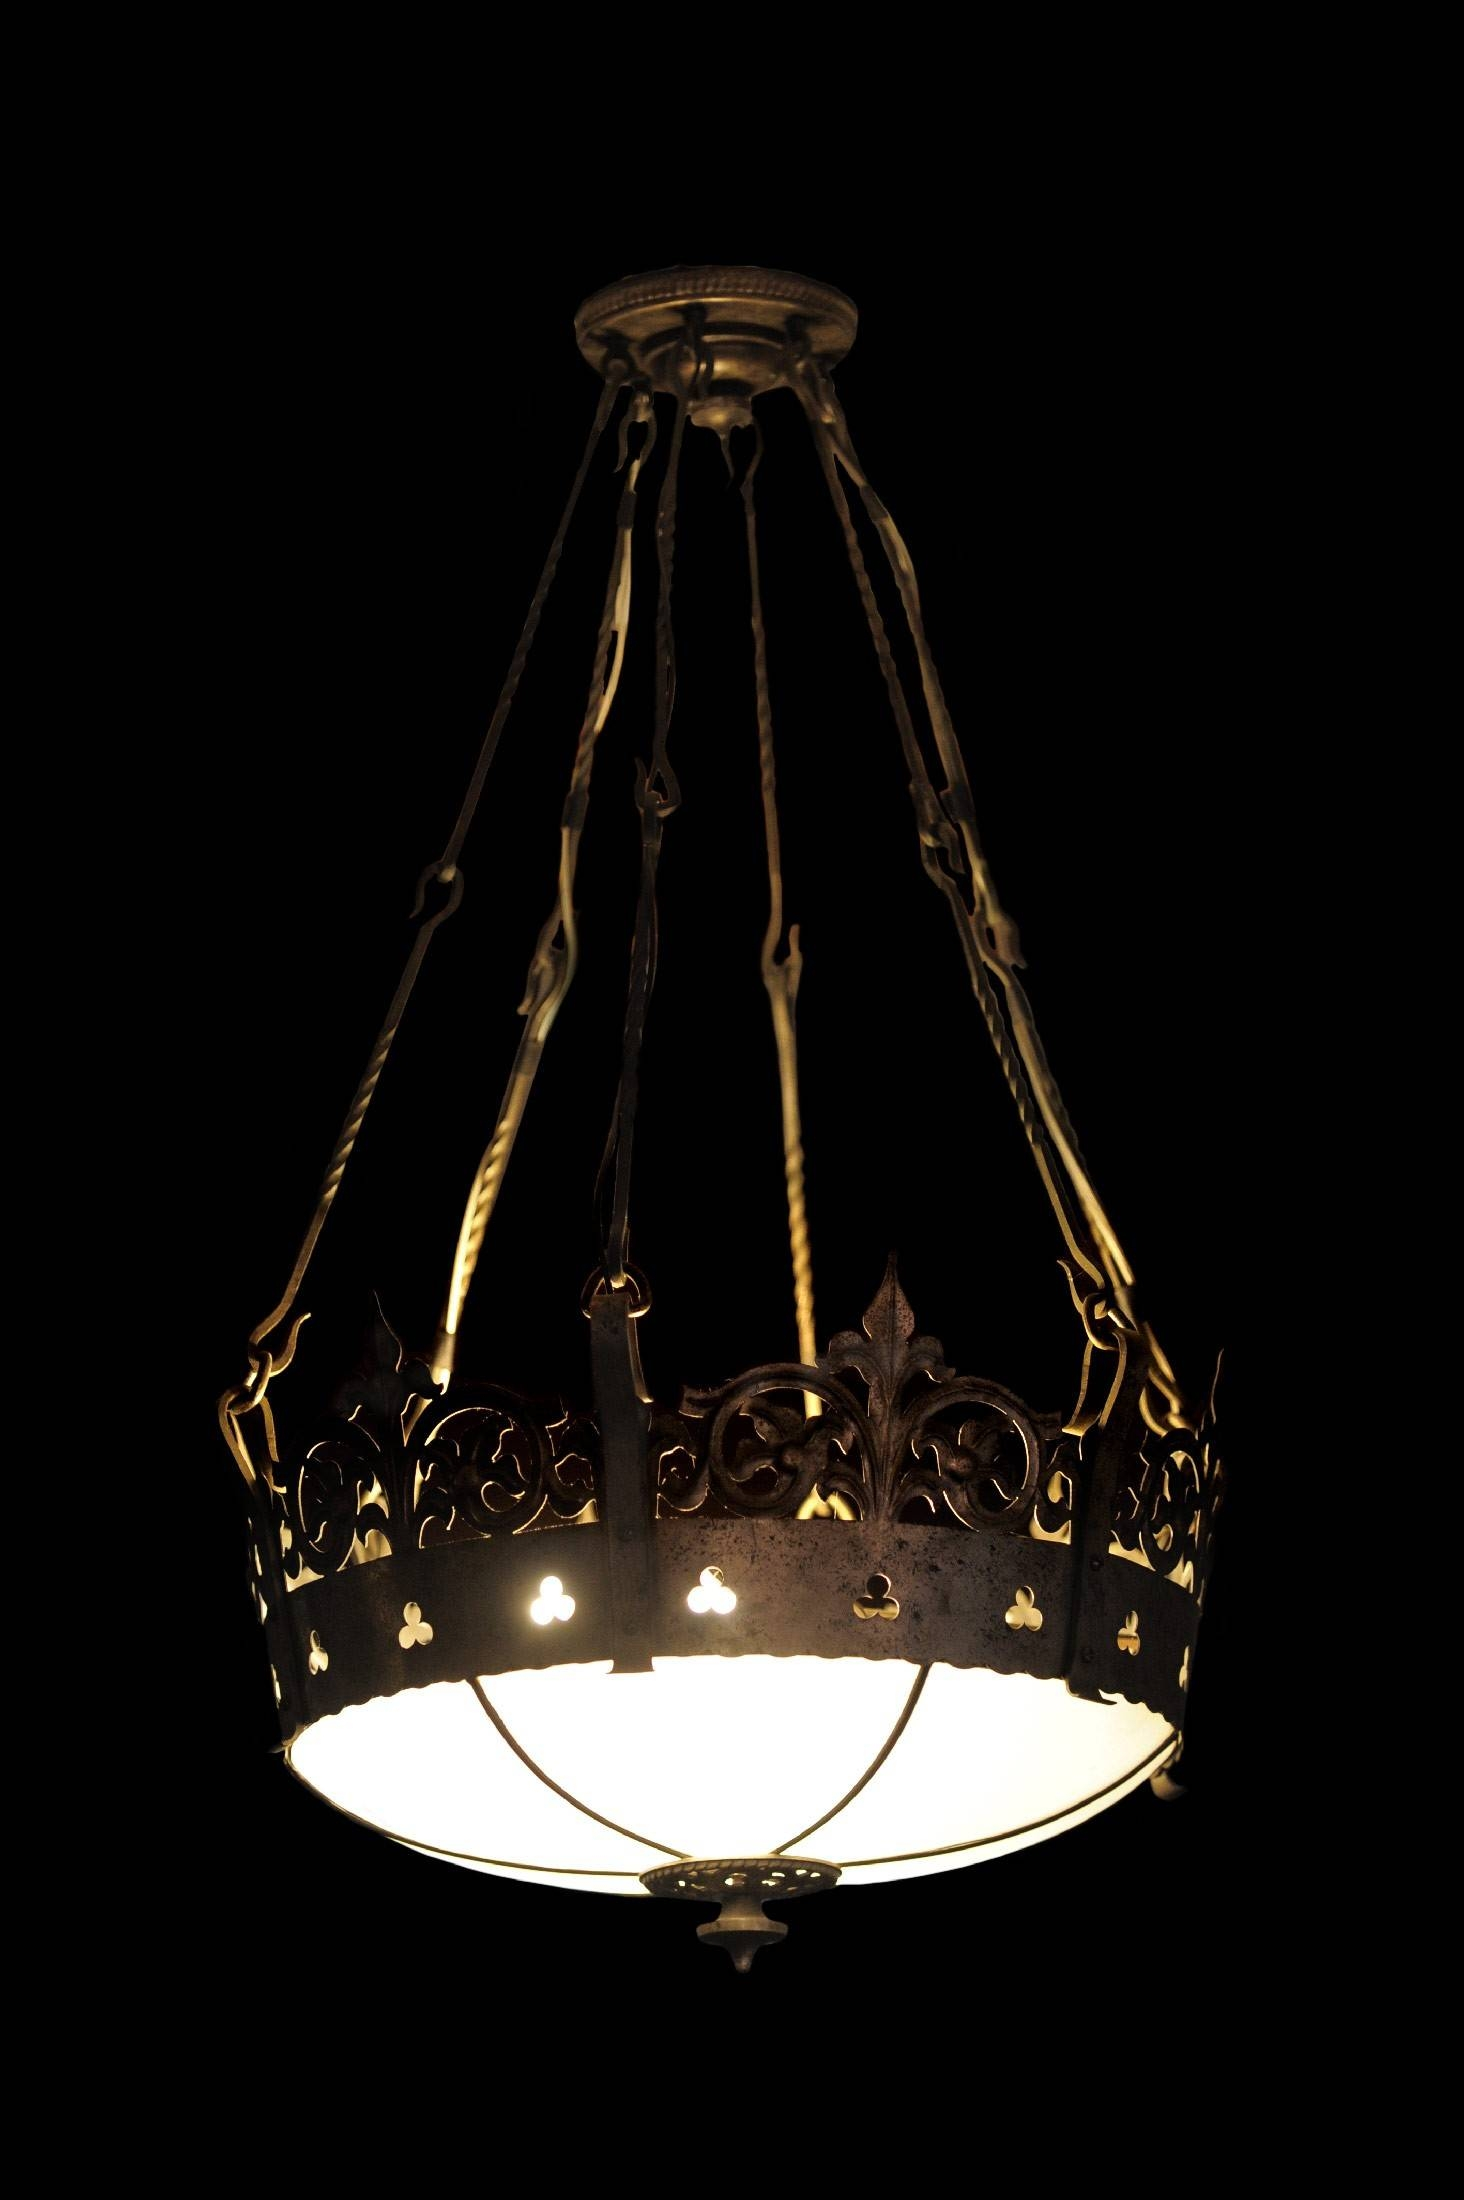 Antique Silver Plated Brass Gothic Church Pendant Light Fixture with Church Pendant Lights Fixtures (Image 2 of 15)